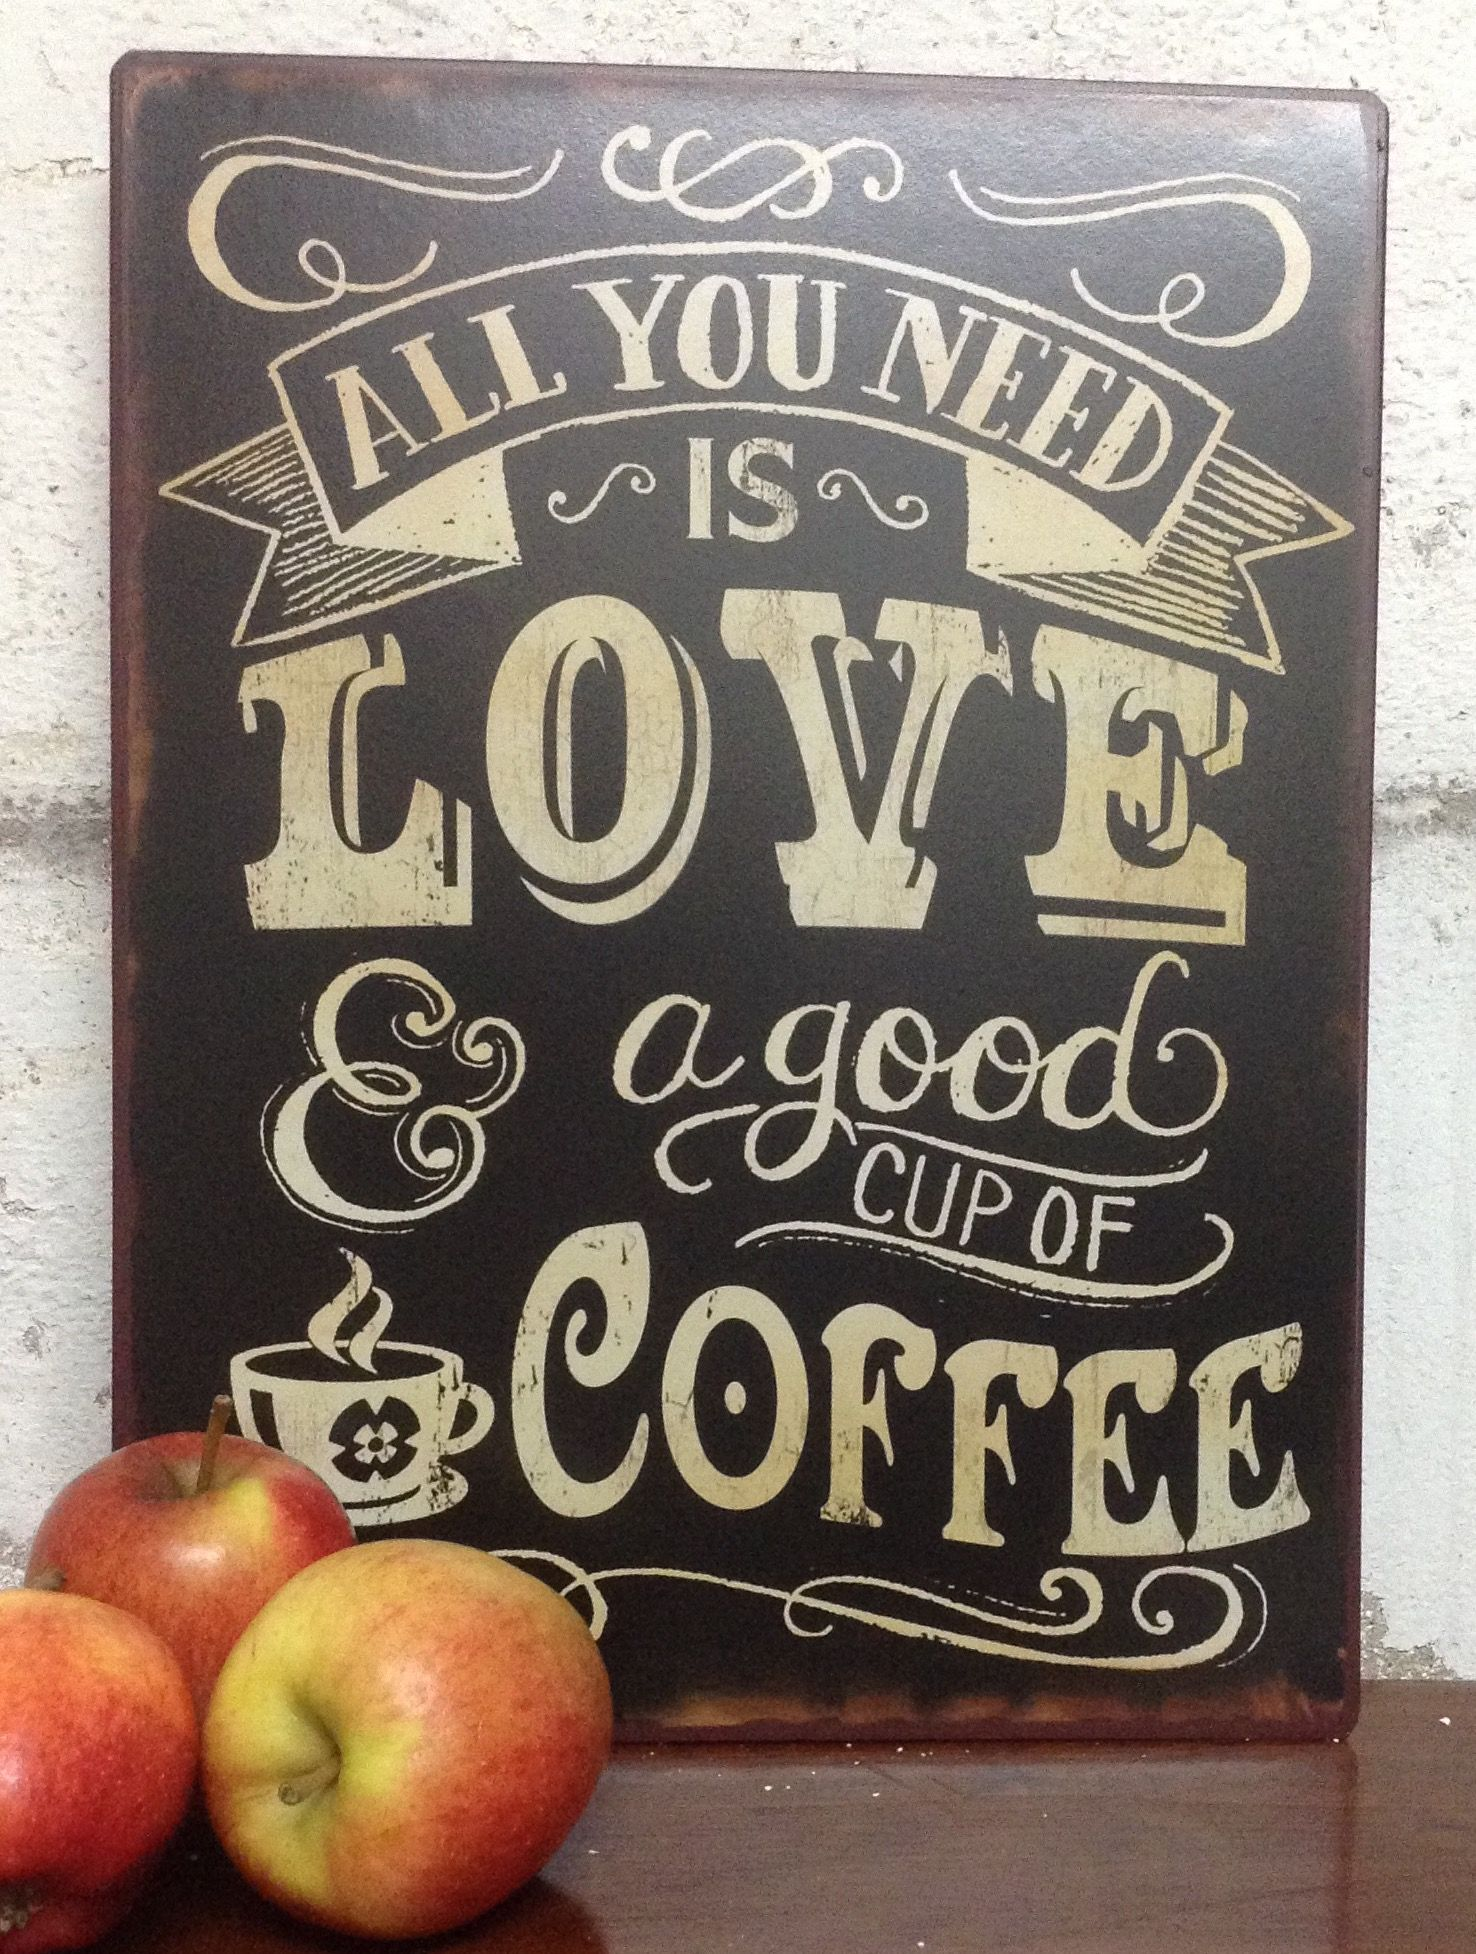 Tin Wall Plaques All You Need Is Love & A Good Cup Of Coffee Tin Wall Plaque